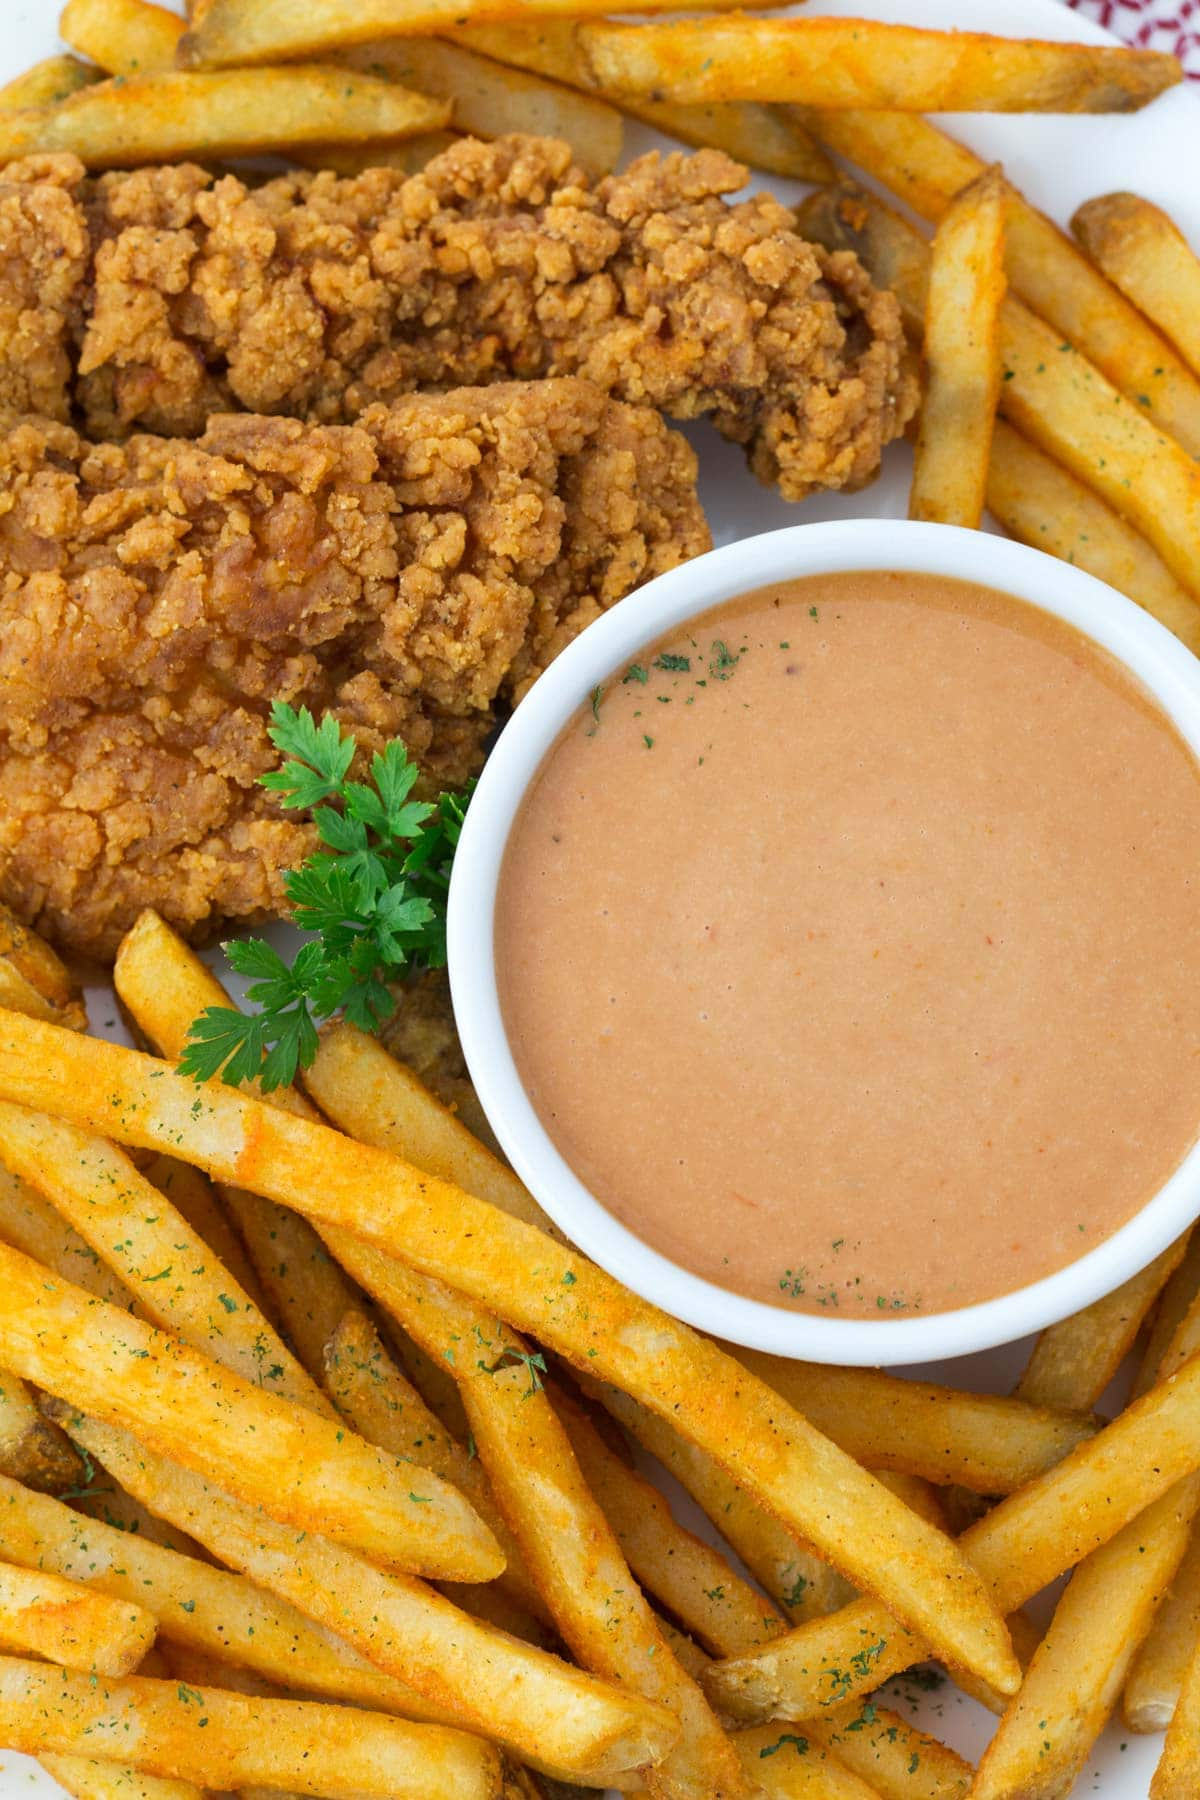 Overhead view of platter of french fries and bowl of Red Robin onion ring sauce.